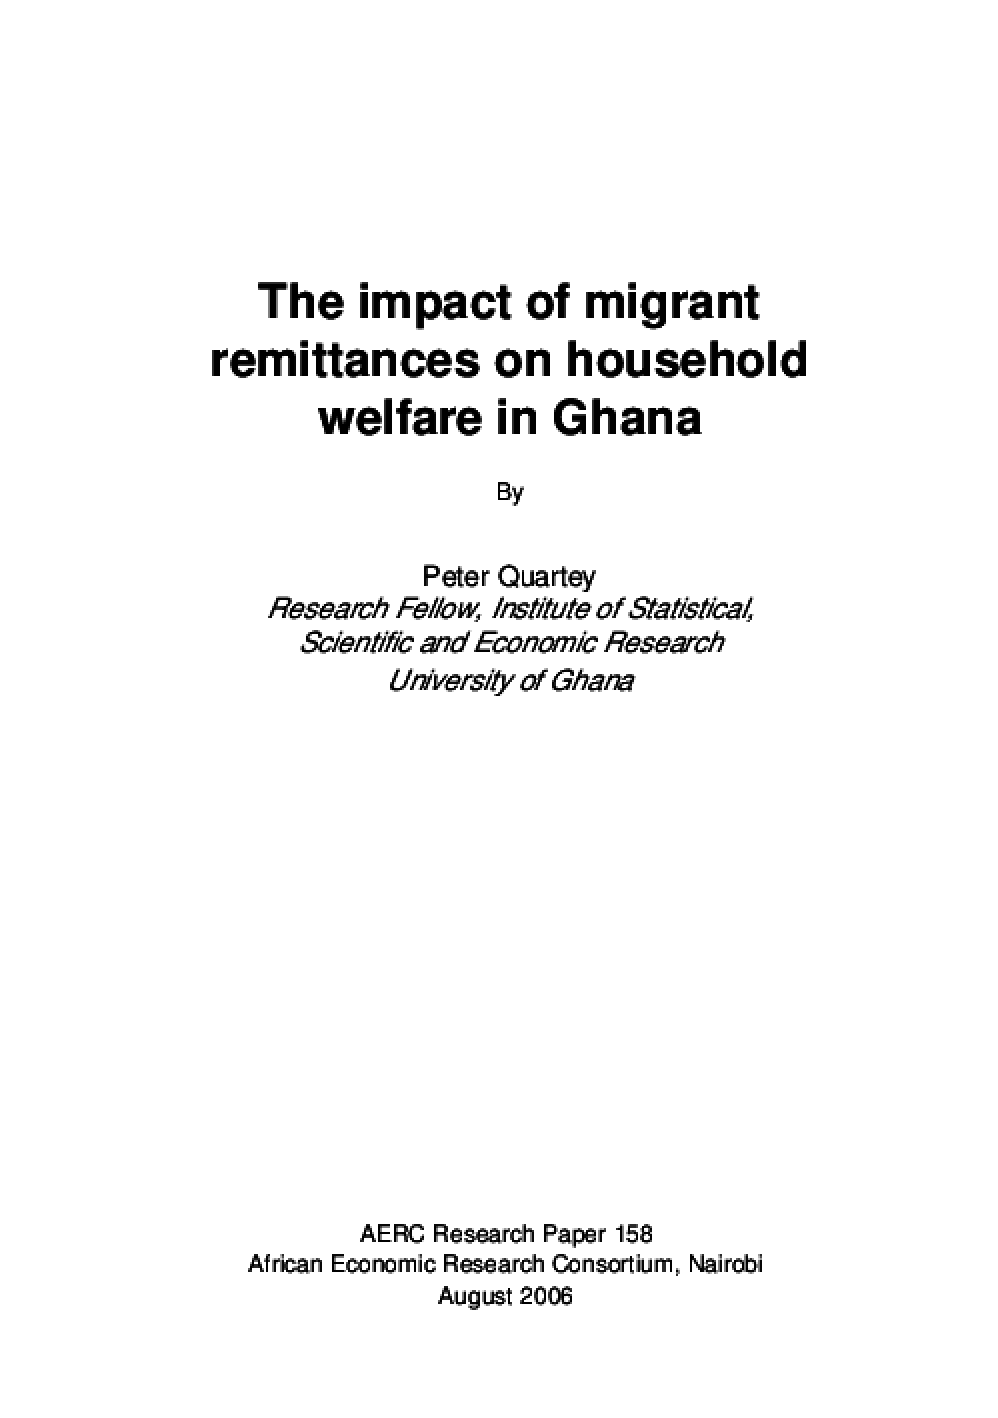 The Impact of Migrant Remittances on Household Welfare in Ghana